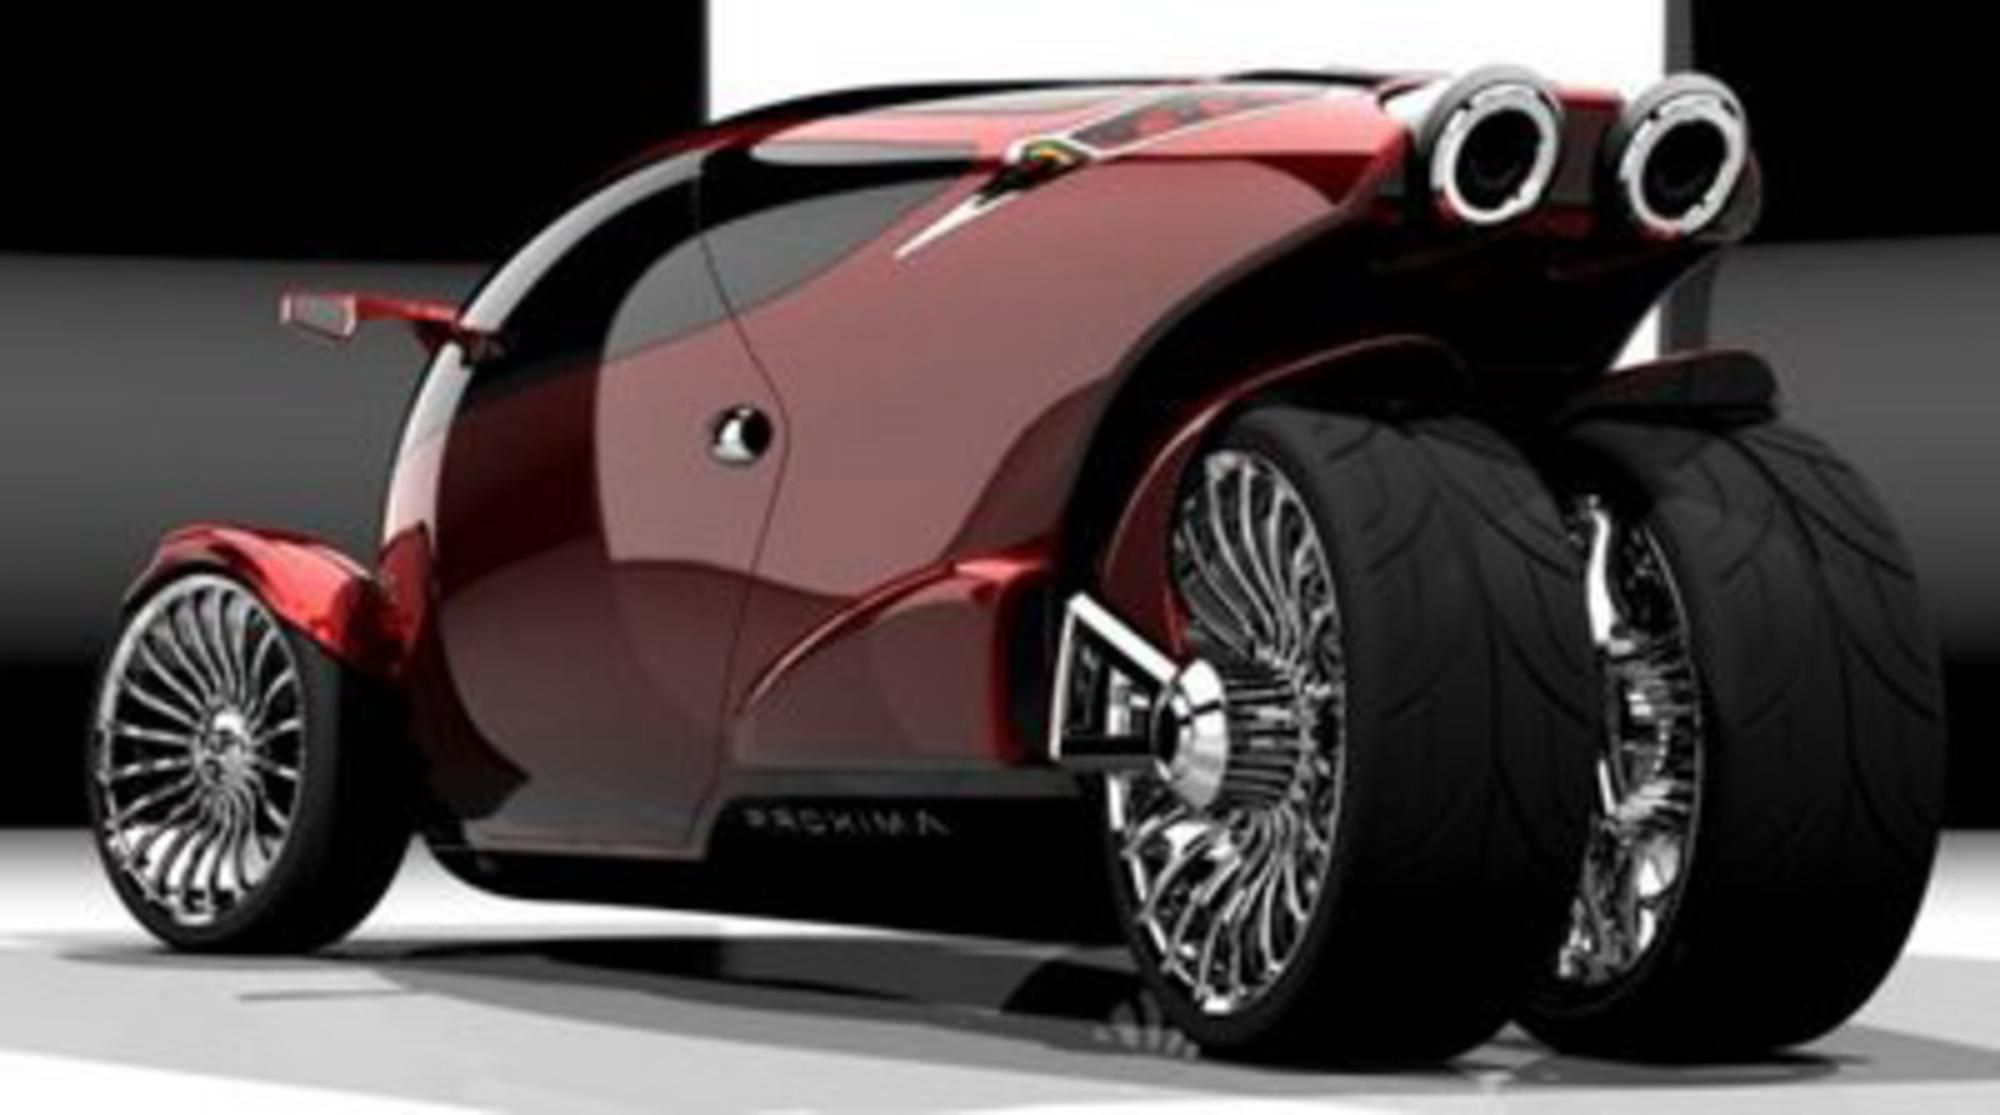 Superbikes Google Search Futuristic Cars Hybrid Car Concept Motorcycles